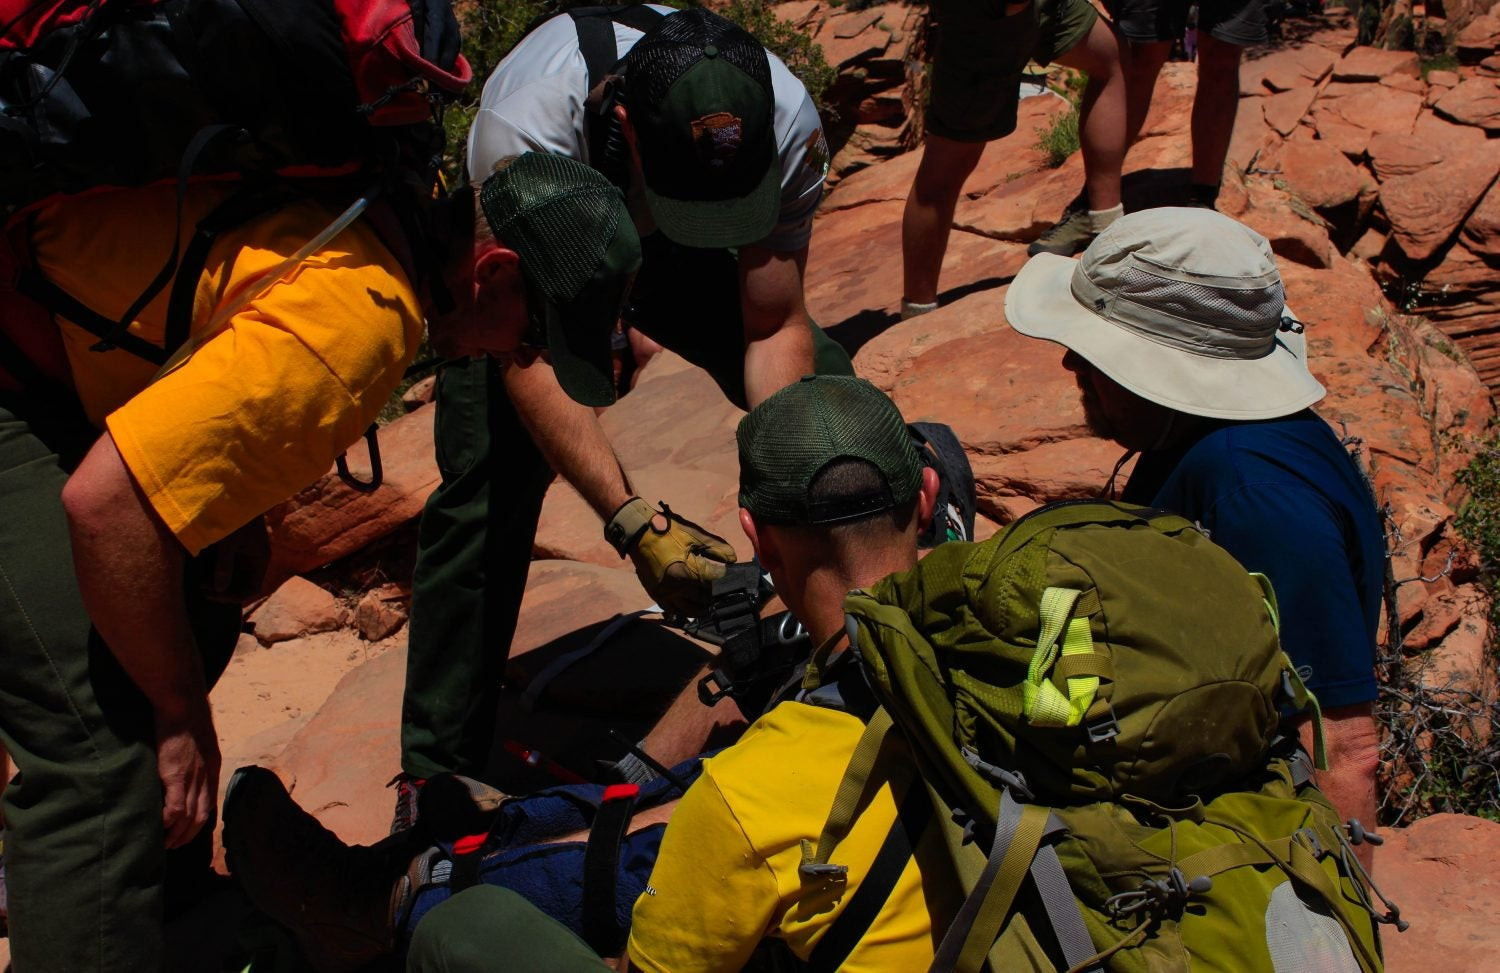 safety tips for angels landing rescue